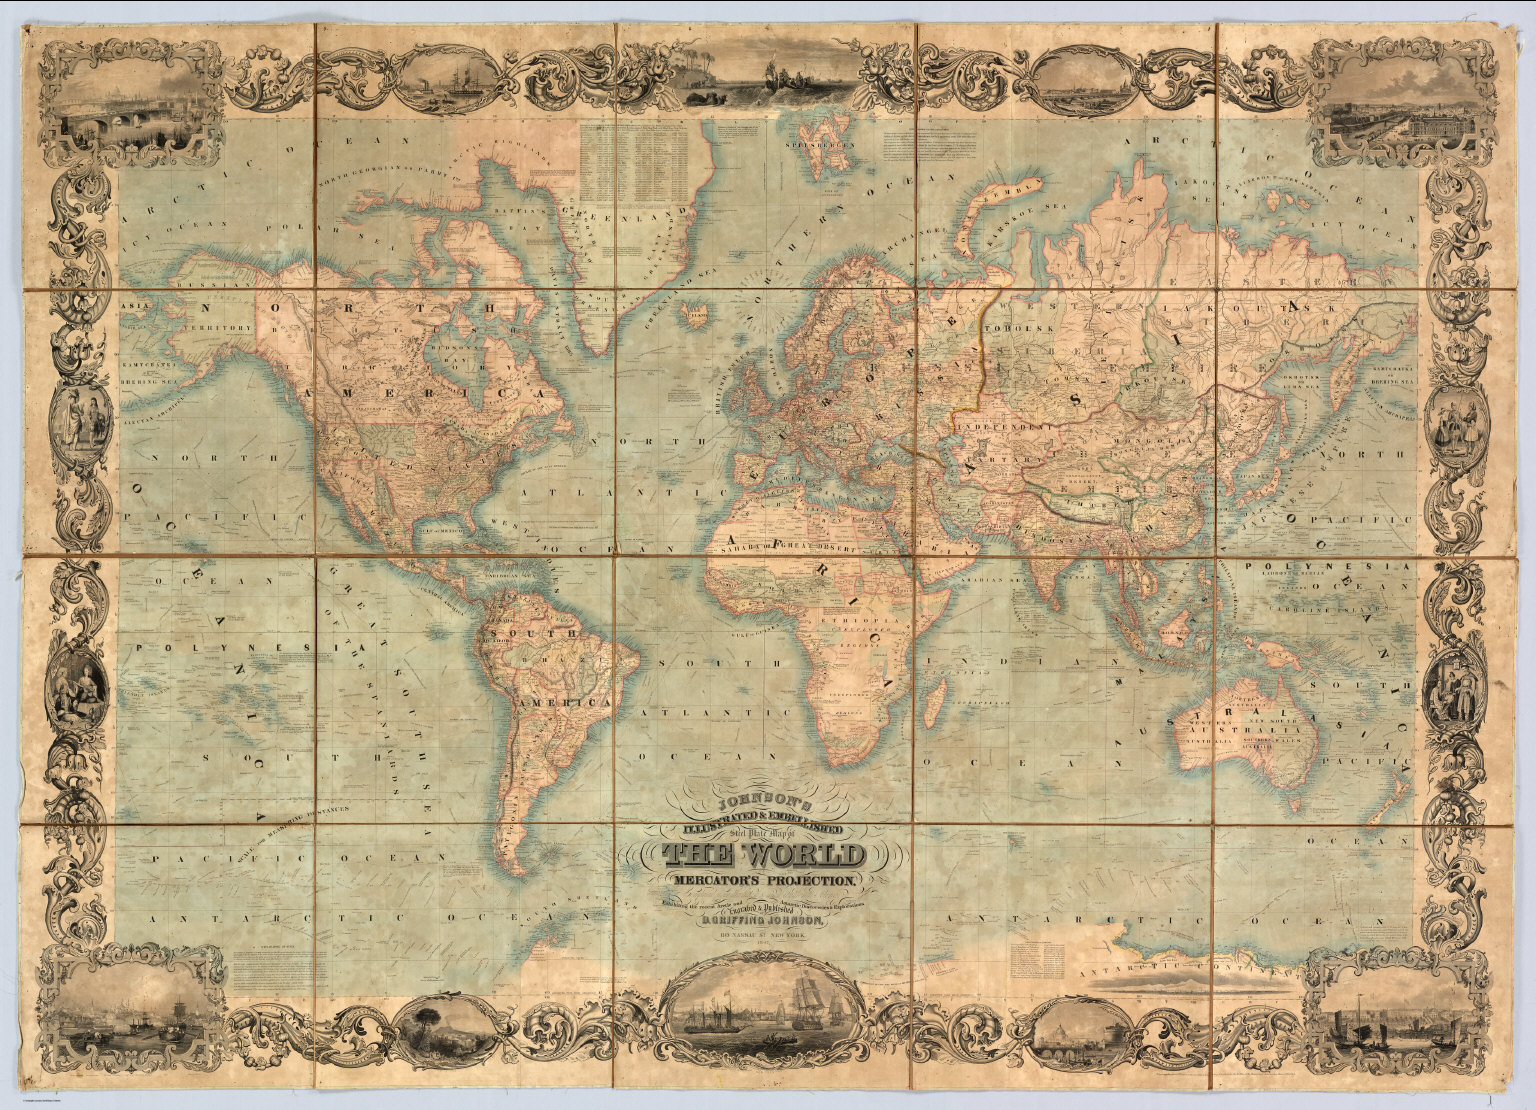 World On Mercators Projection David Rumsey Historical Map Collection - Authentic world map